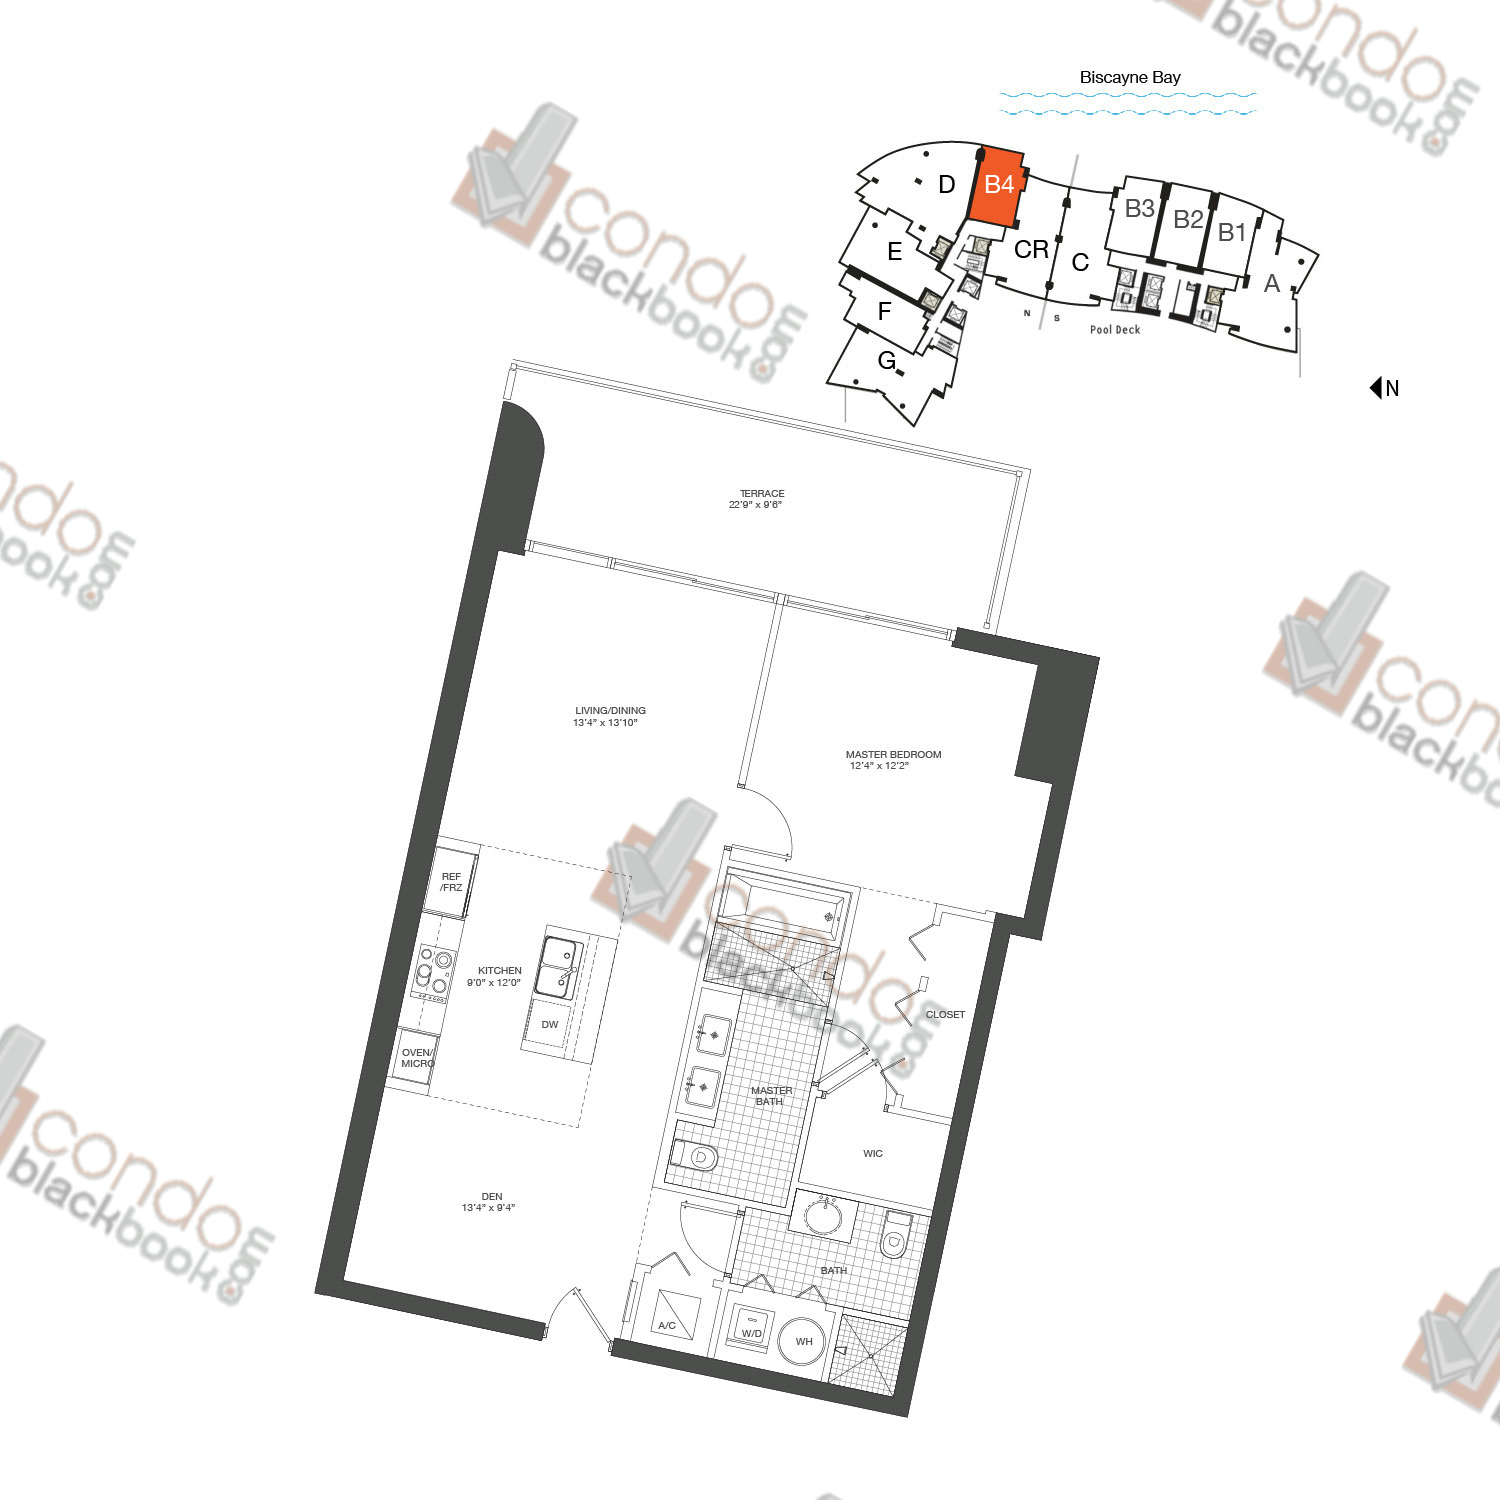 Floor plan for 900 Biscayne Bay Downtown Miami Miami, model Unit B4, line 04, 1/2+DEN bedrooms, 938 sq ft